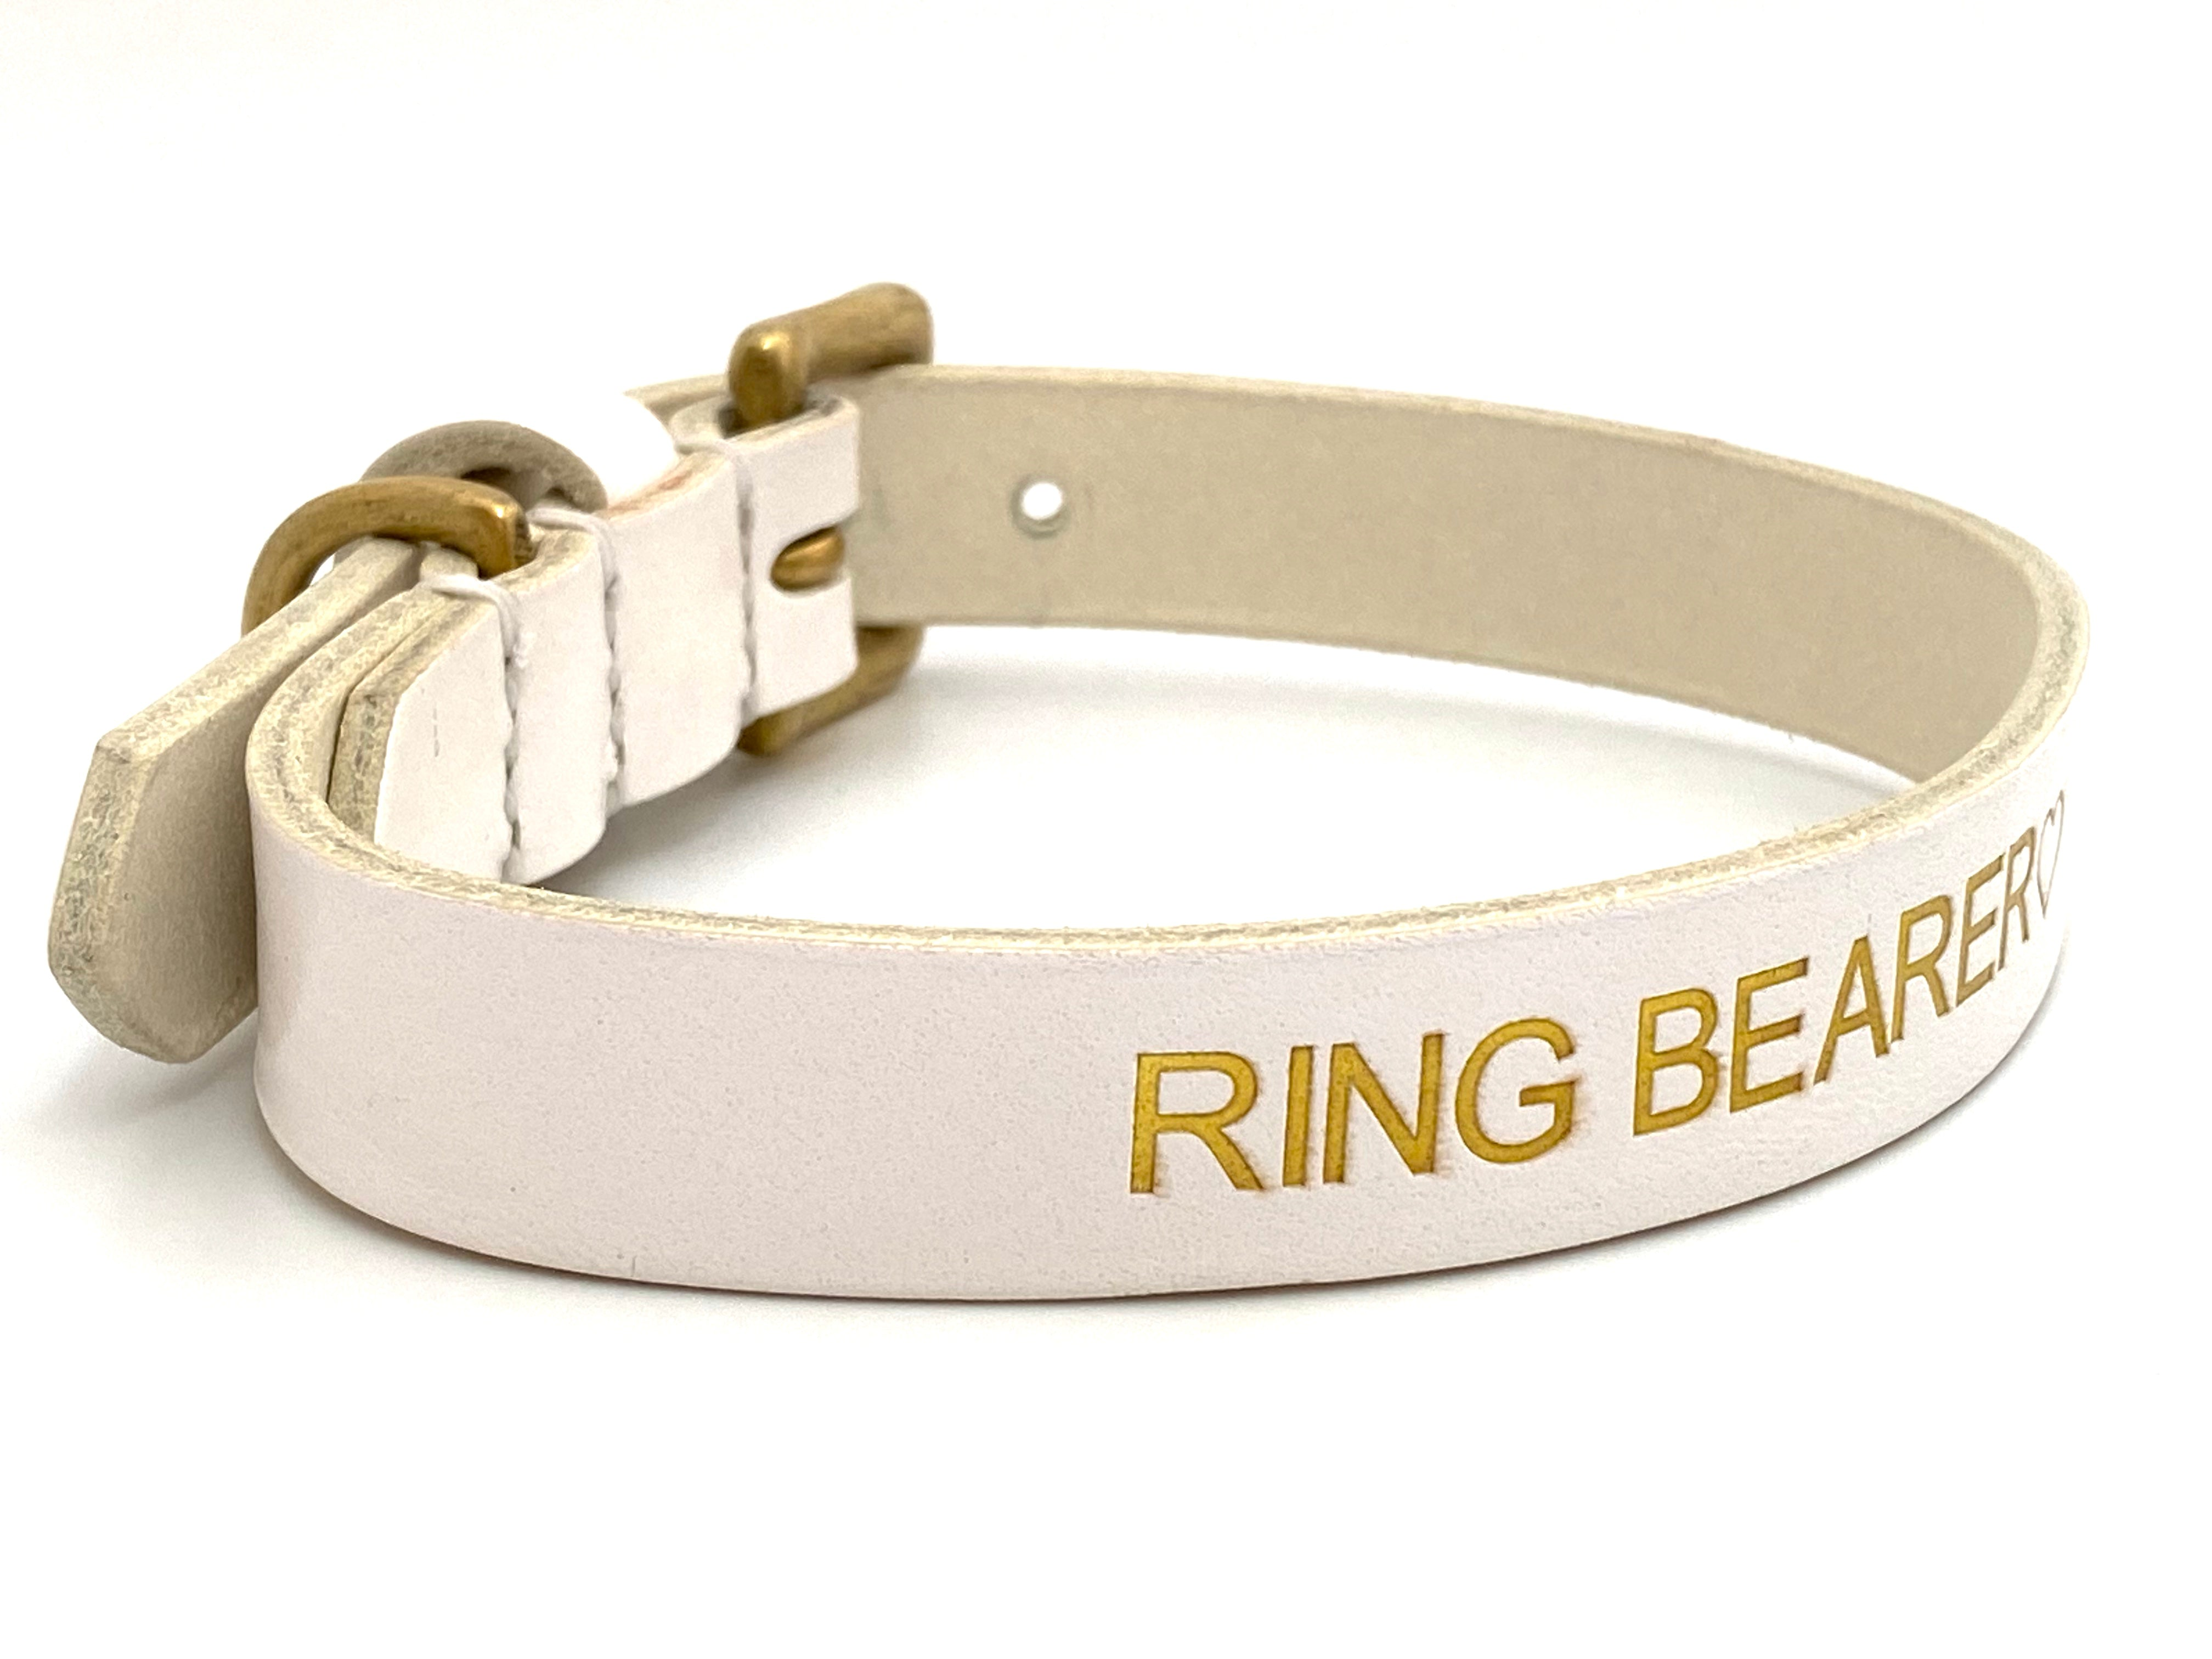 ring bearer dog collar